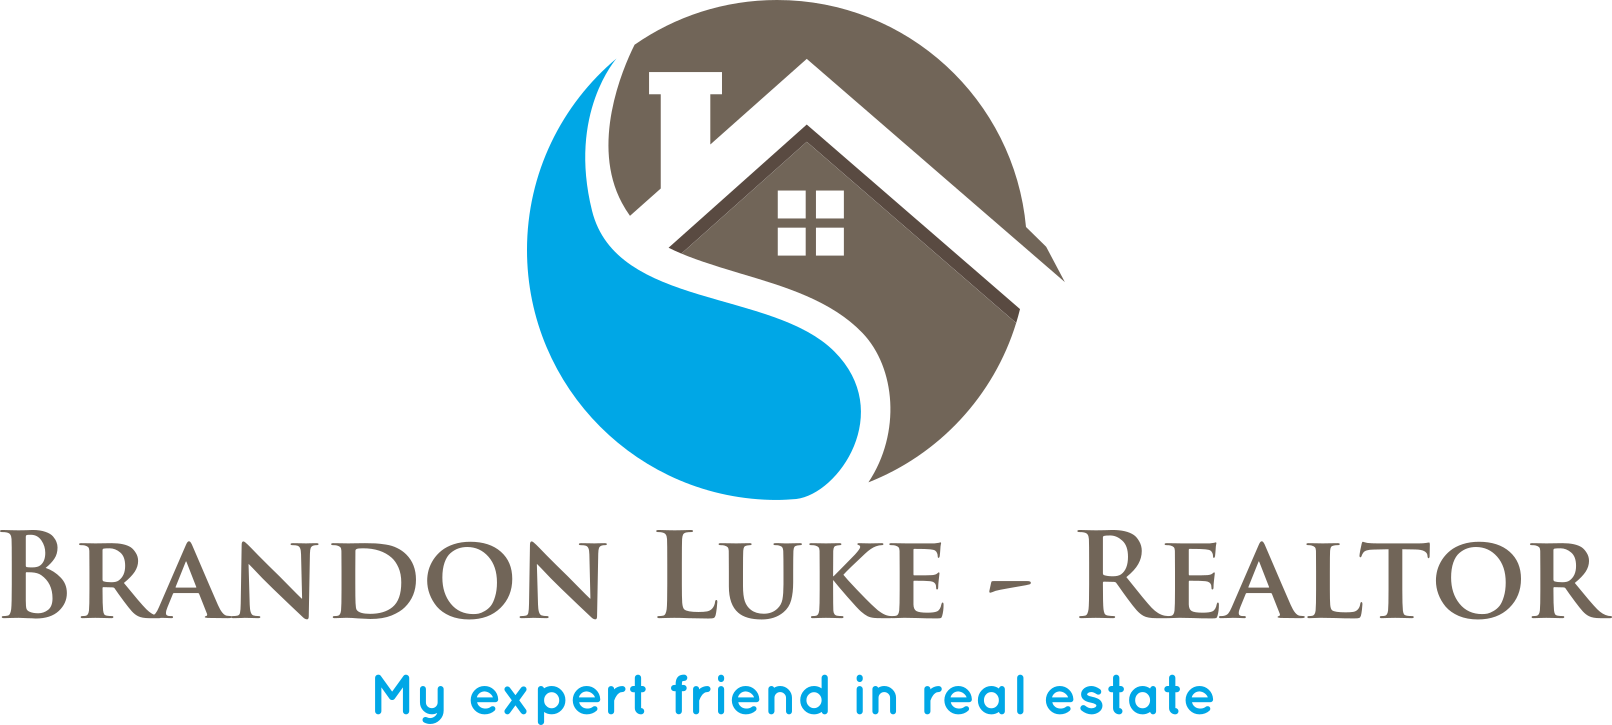 Brandon Luke - Realtor